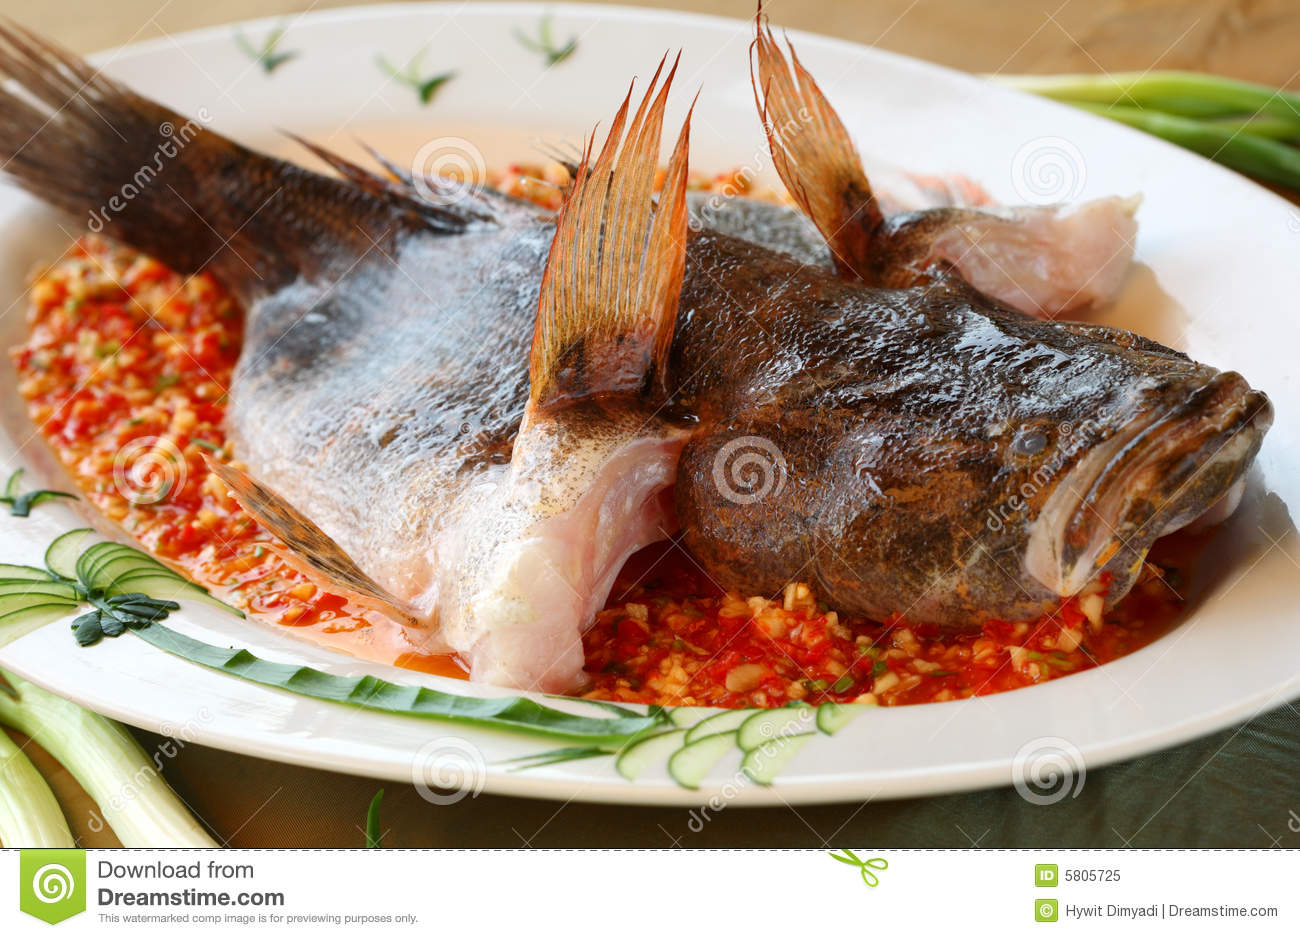 Steamed whole fish royalty free stock photo image 5805725 for Steamed whole fish